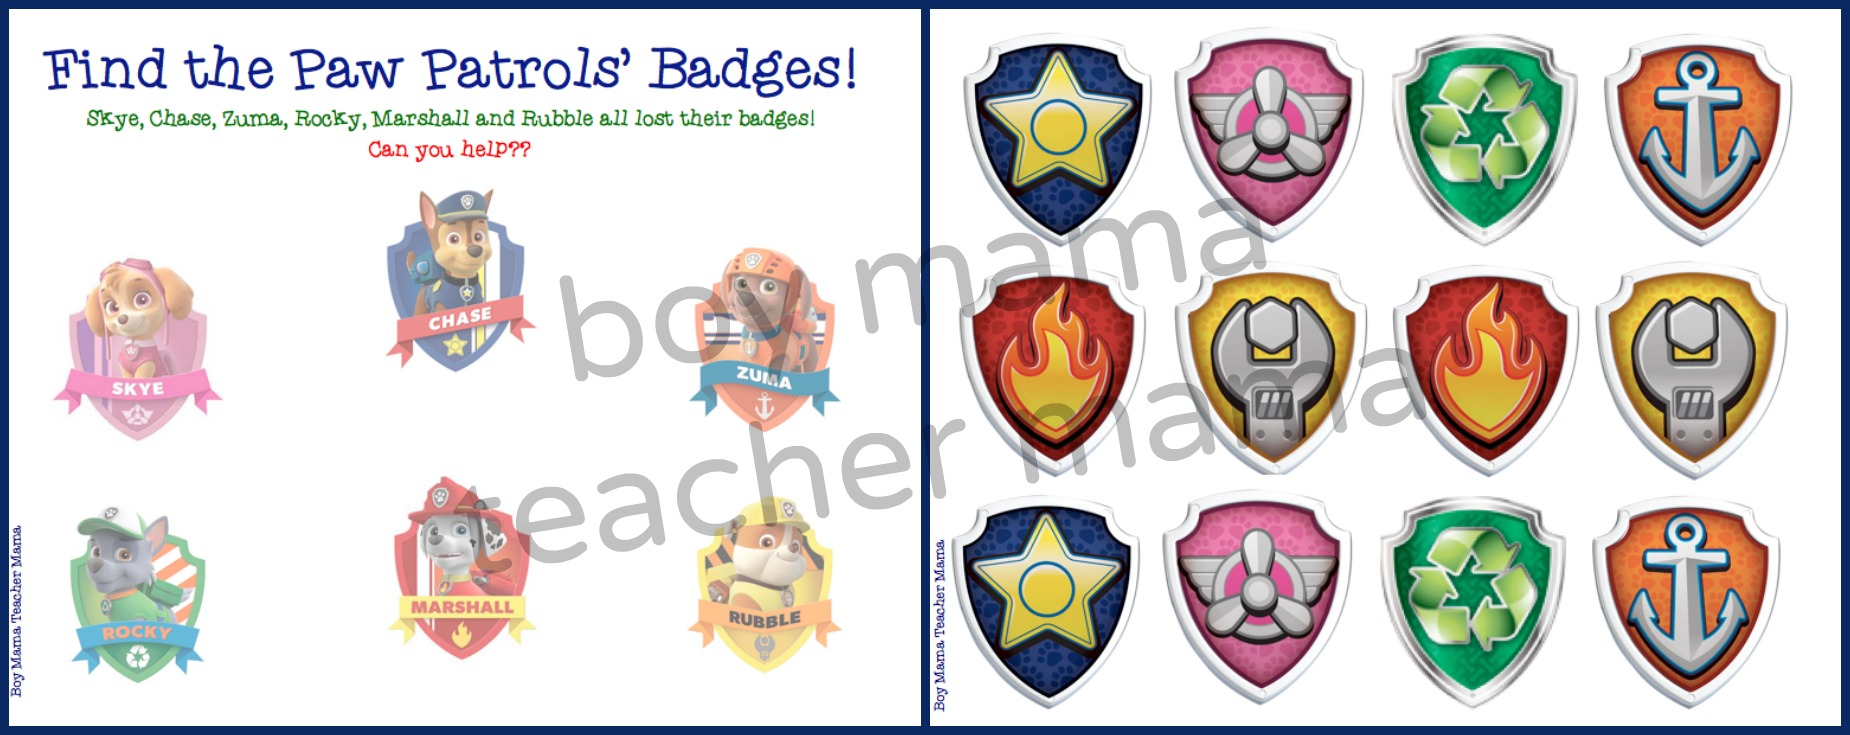 photo regarding Free Printable Paw Patrol Badges called Boy Mama: Free of charge Paw Patrol Obtain the Badge Printable Match